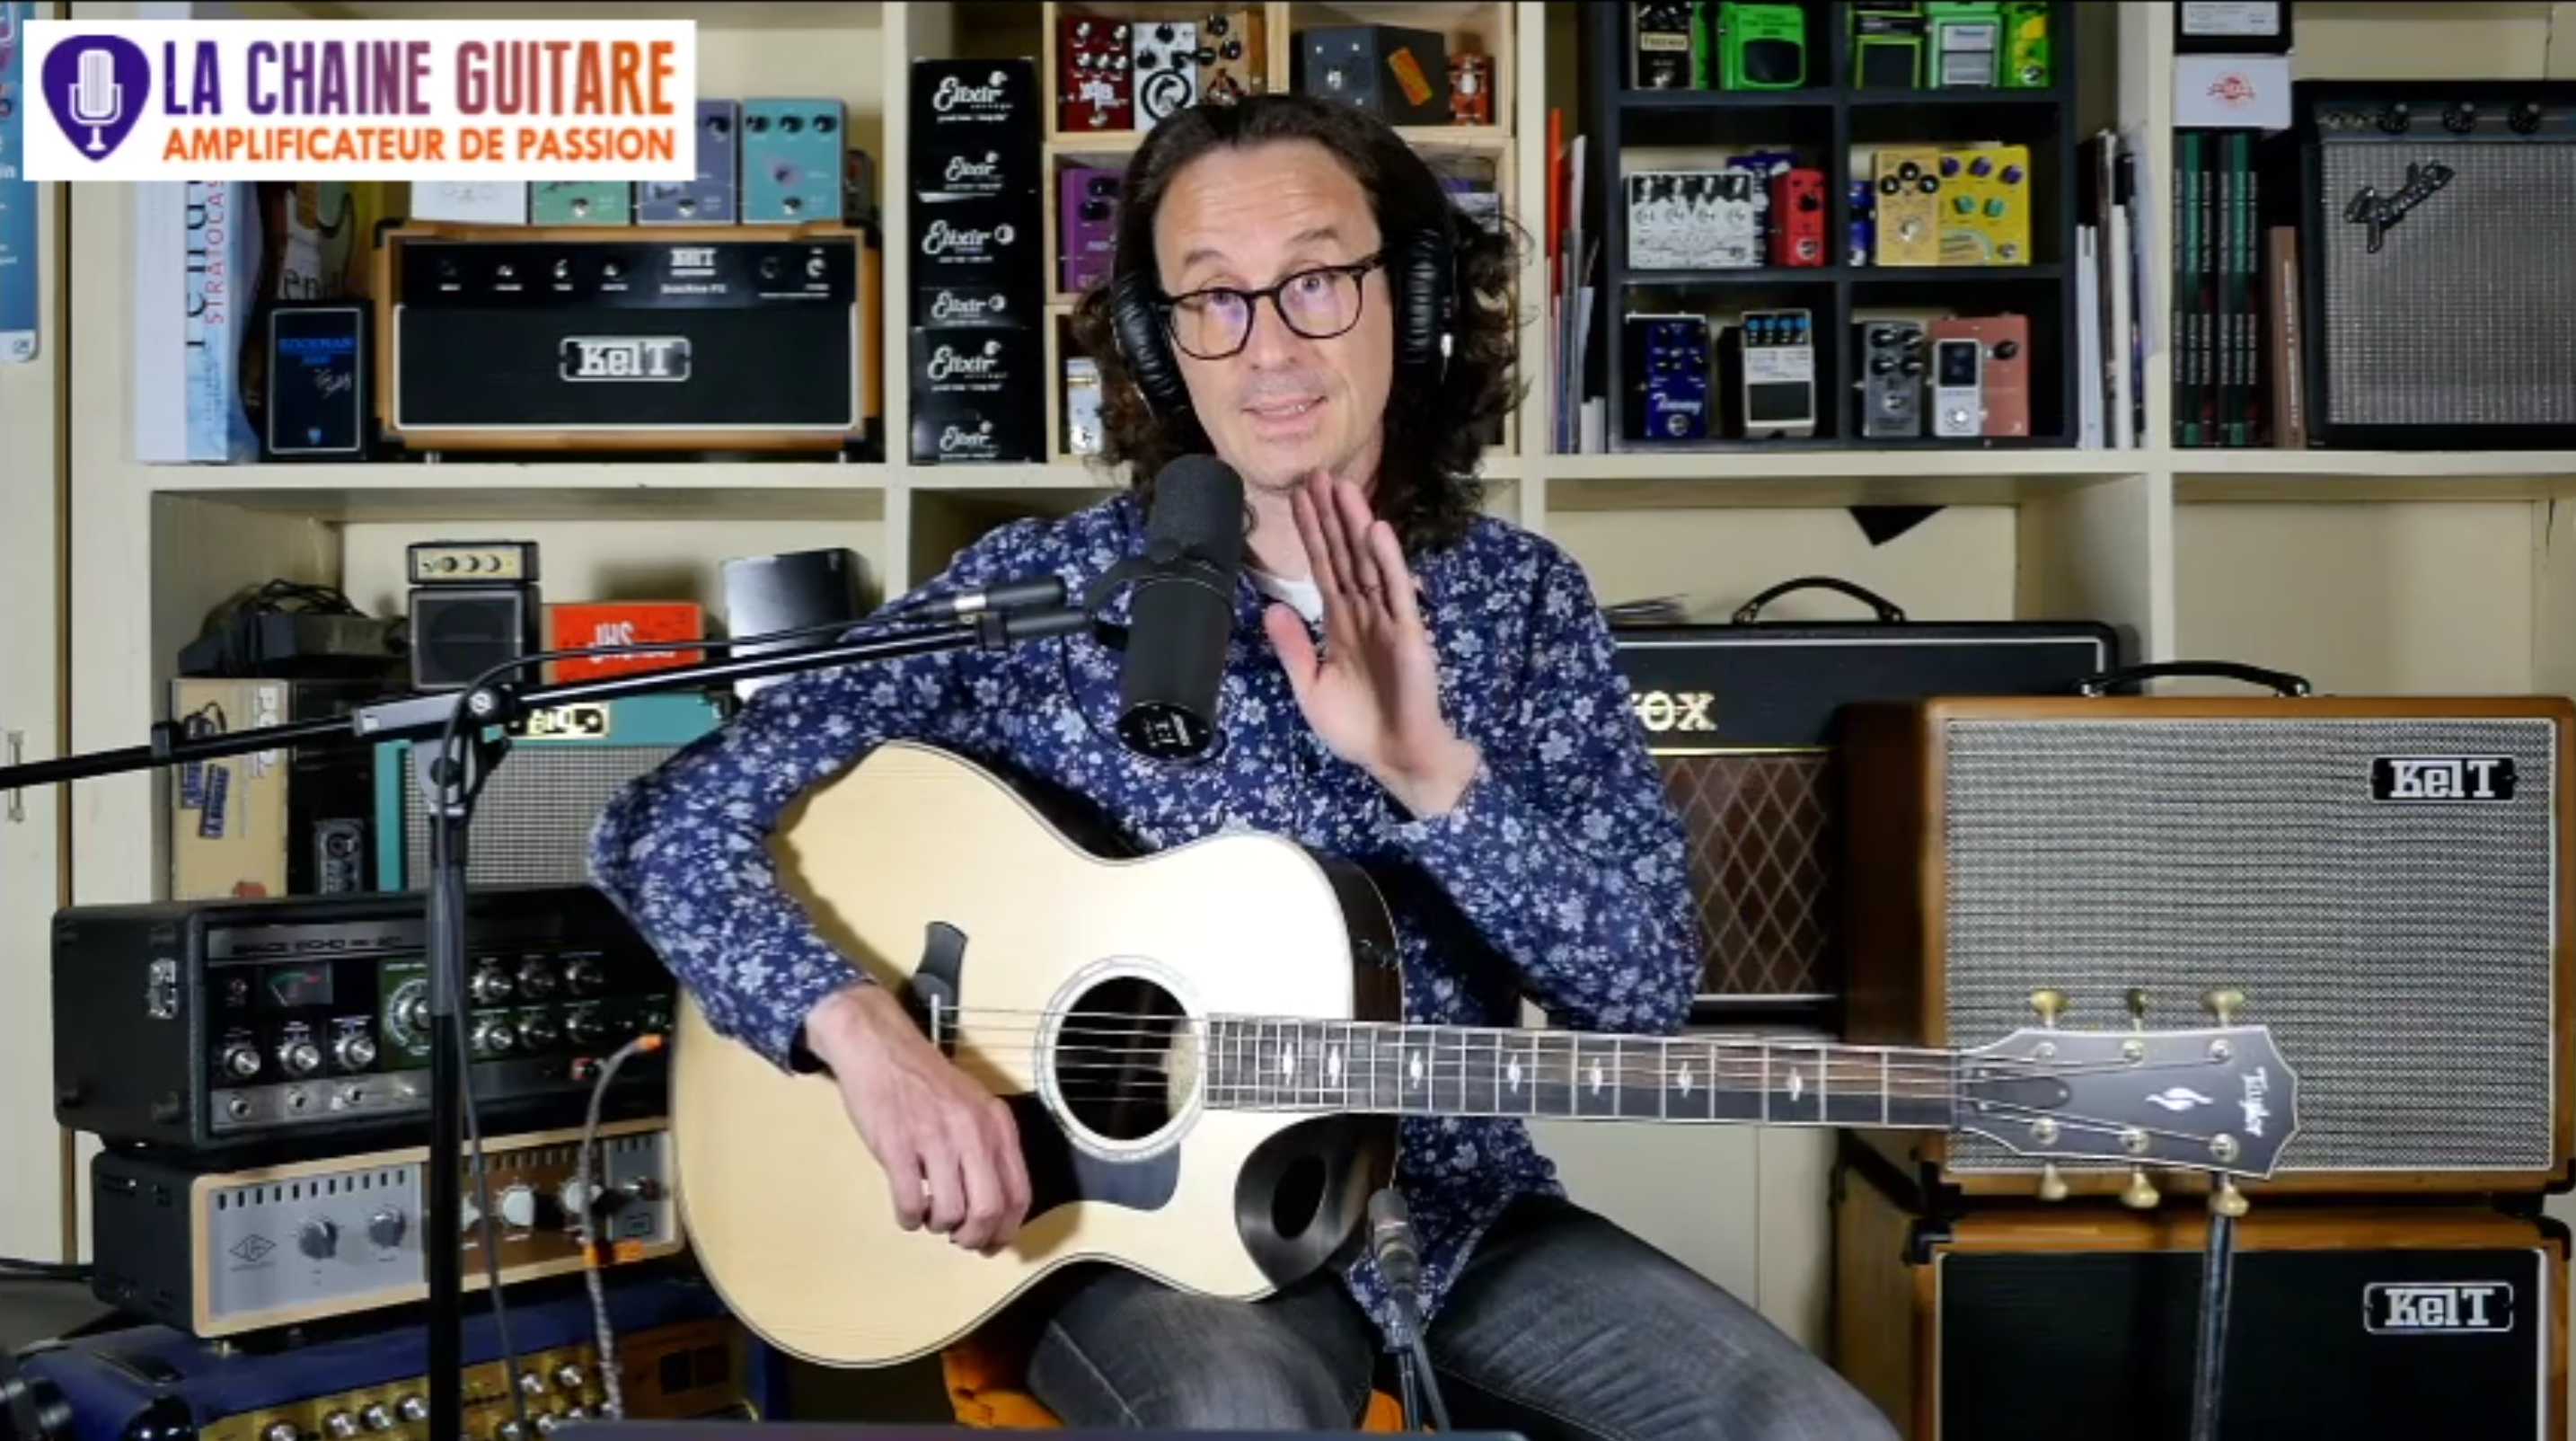 Taylor 816ce, Gus G et Firewind, Bruce Forman - Replay Live 22/05/20